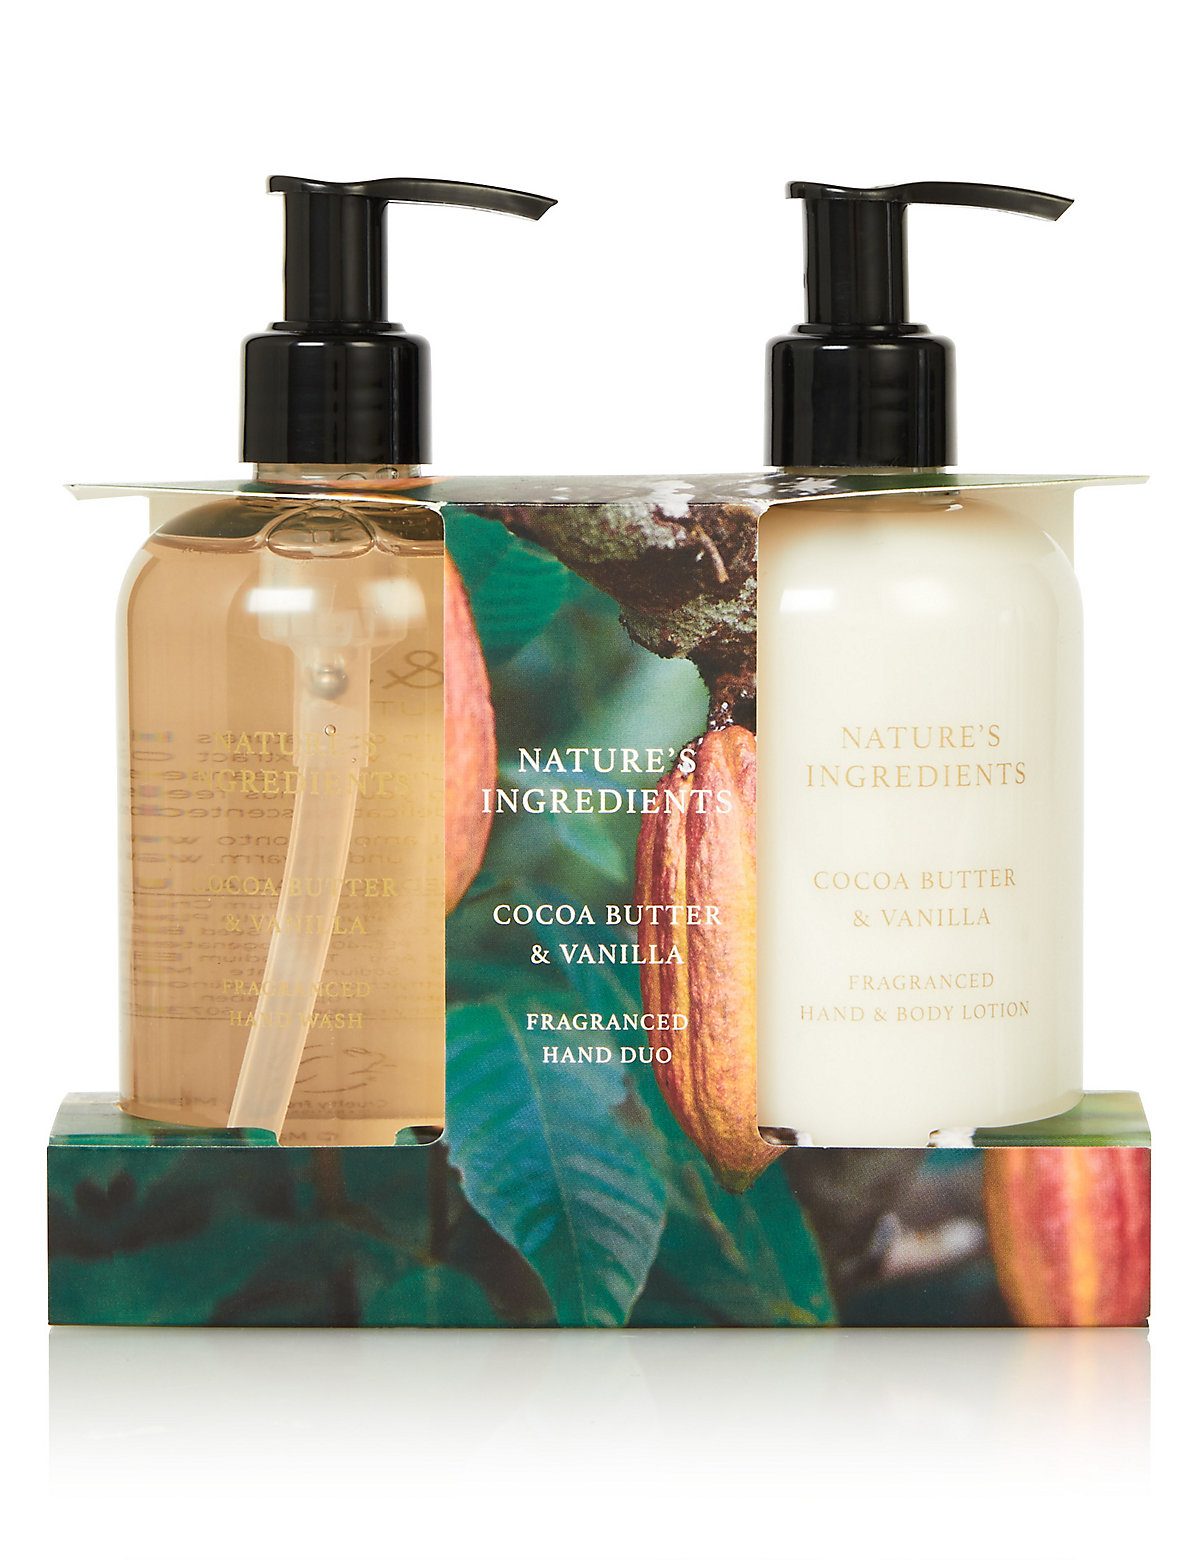 Nature's Ingredients Cocoa Butter And Vanilla Hand Duo